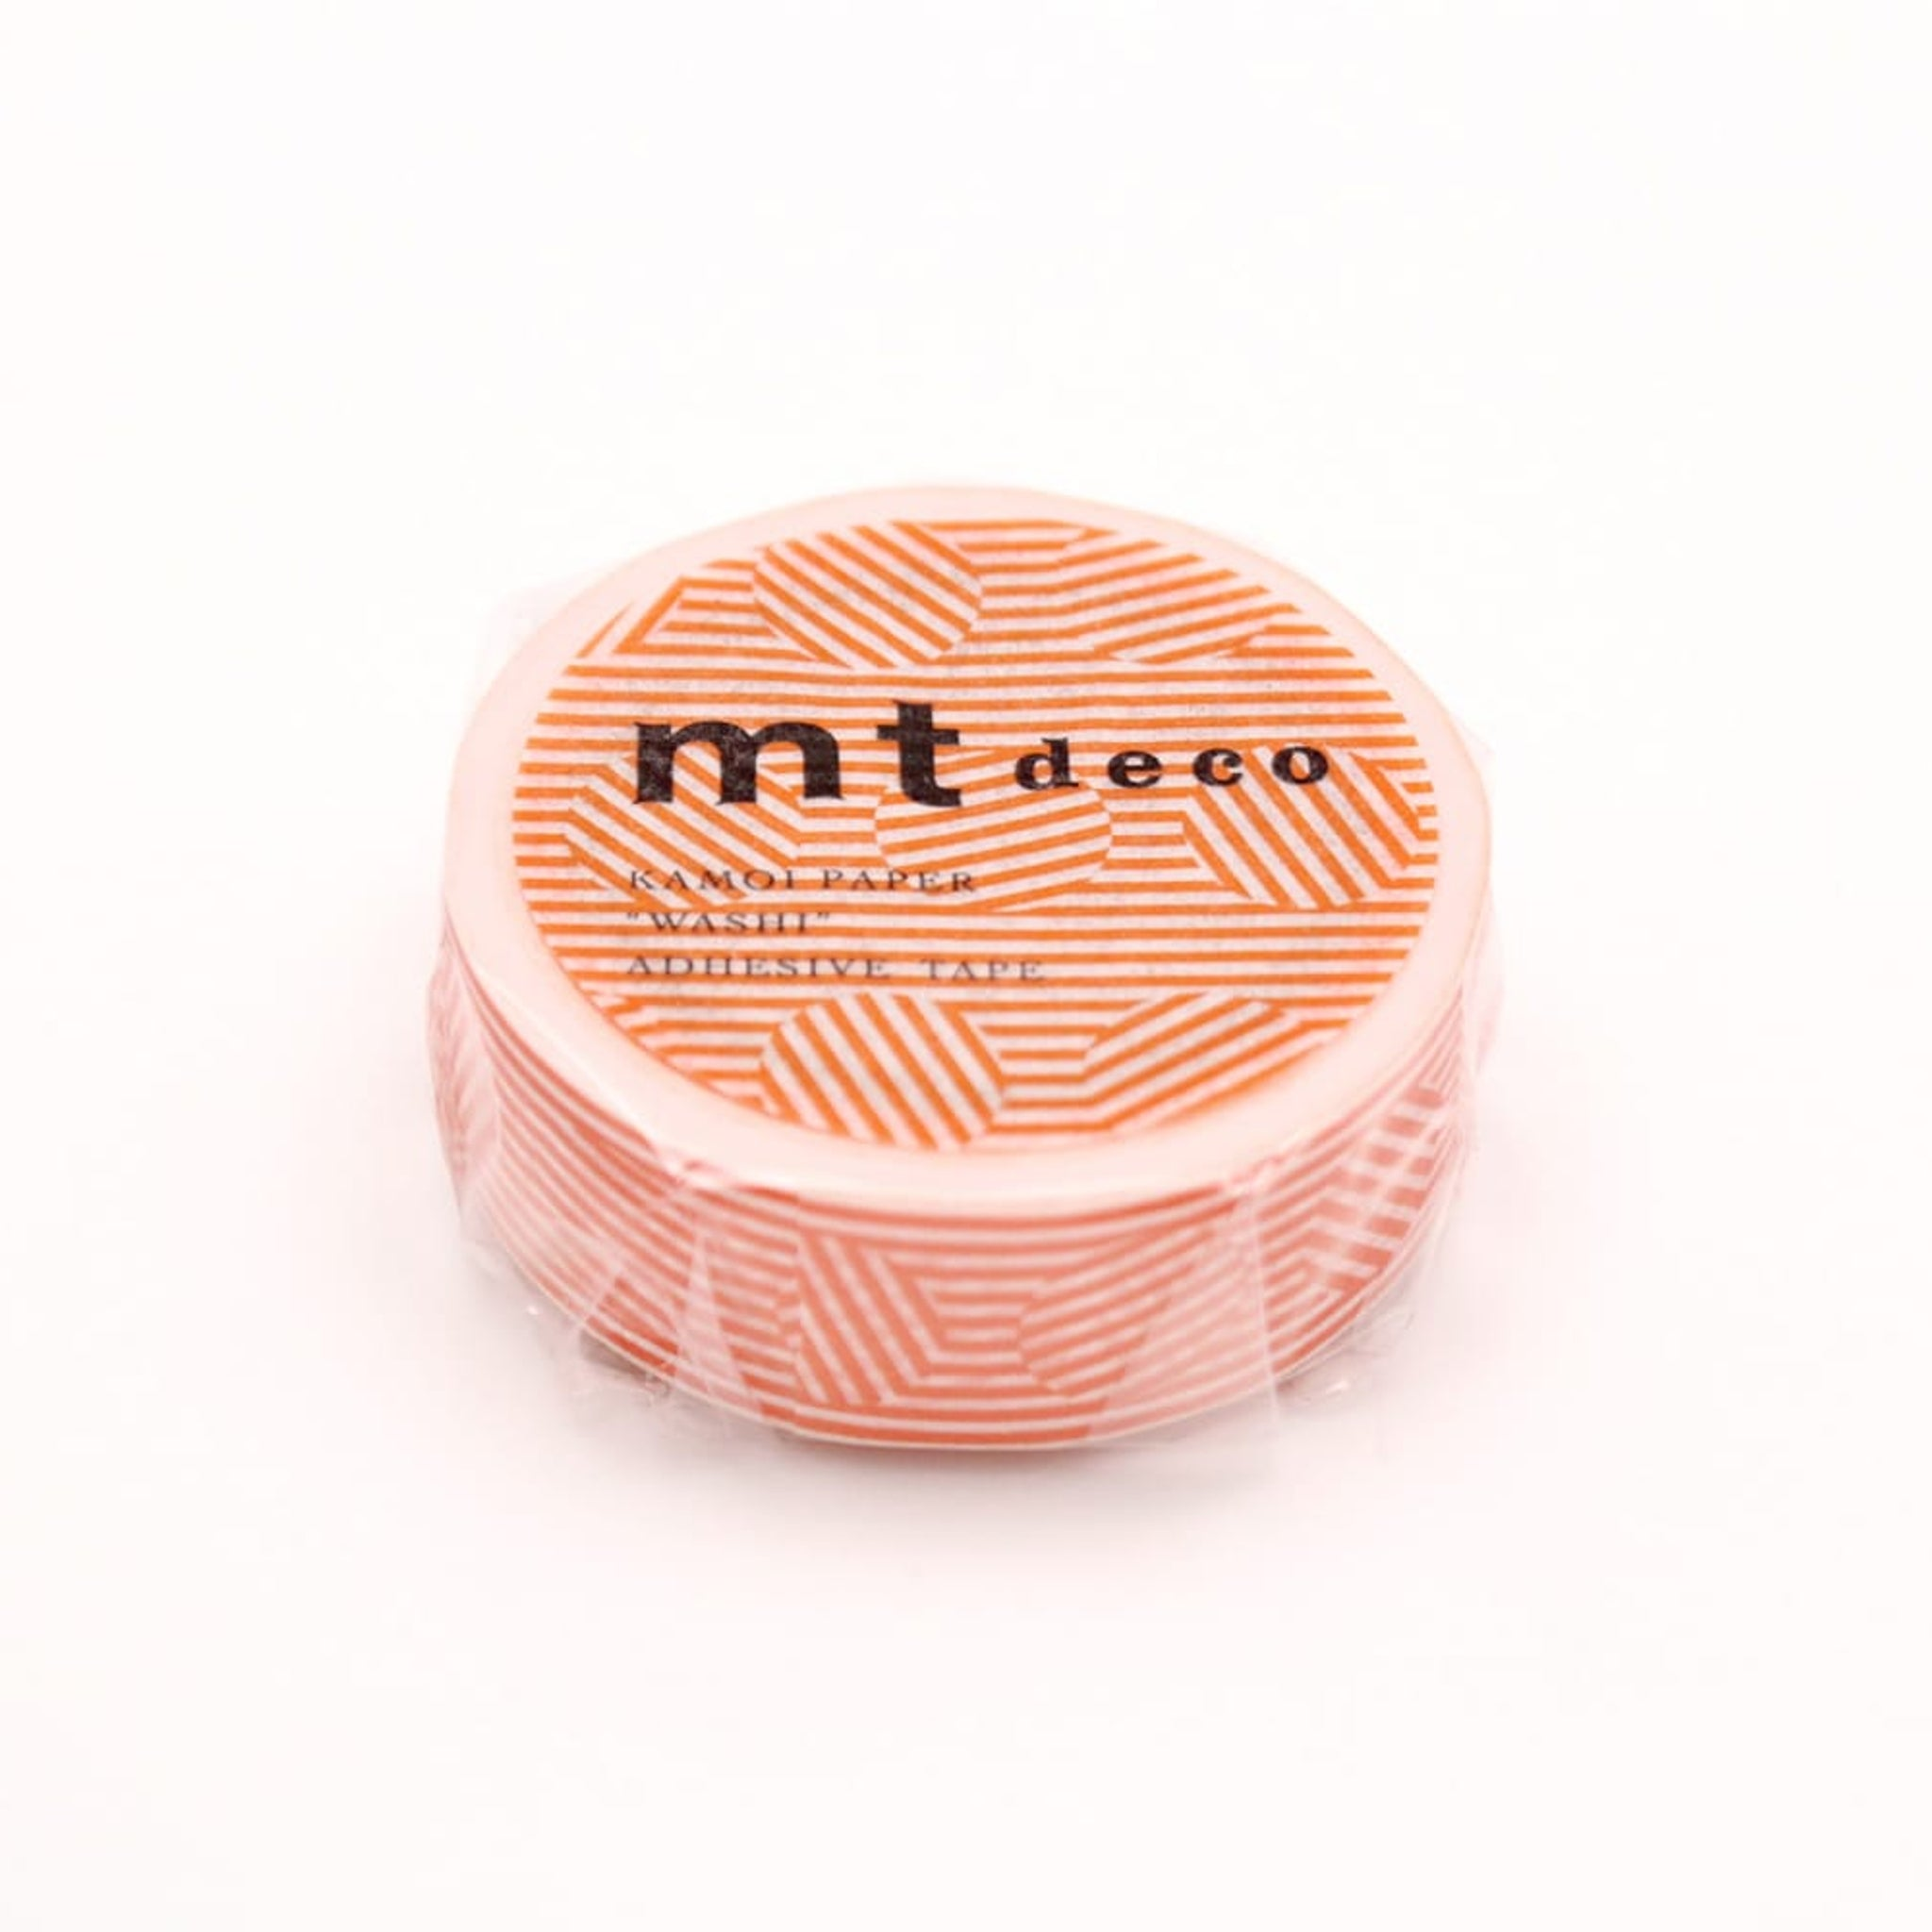 MT Deco Washi Tape Border & Circle Orange